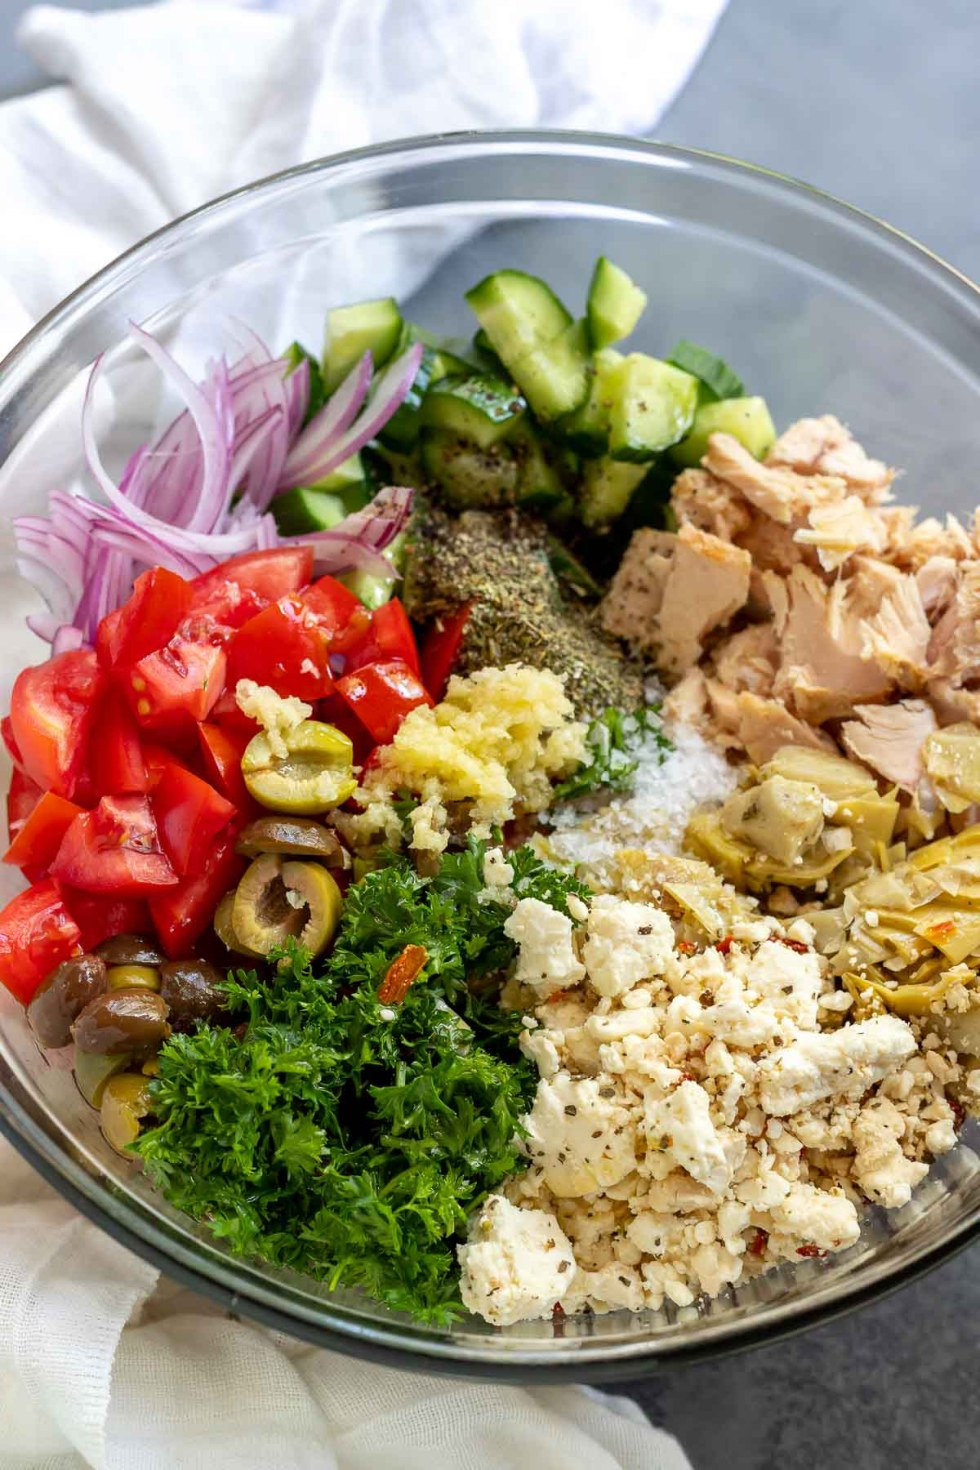 tuna salad ingredients in clear glass bowl